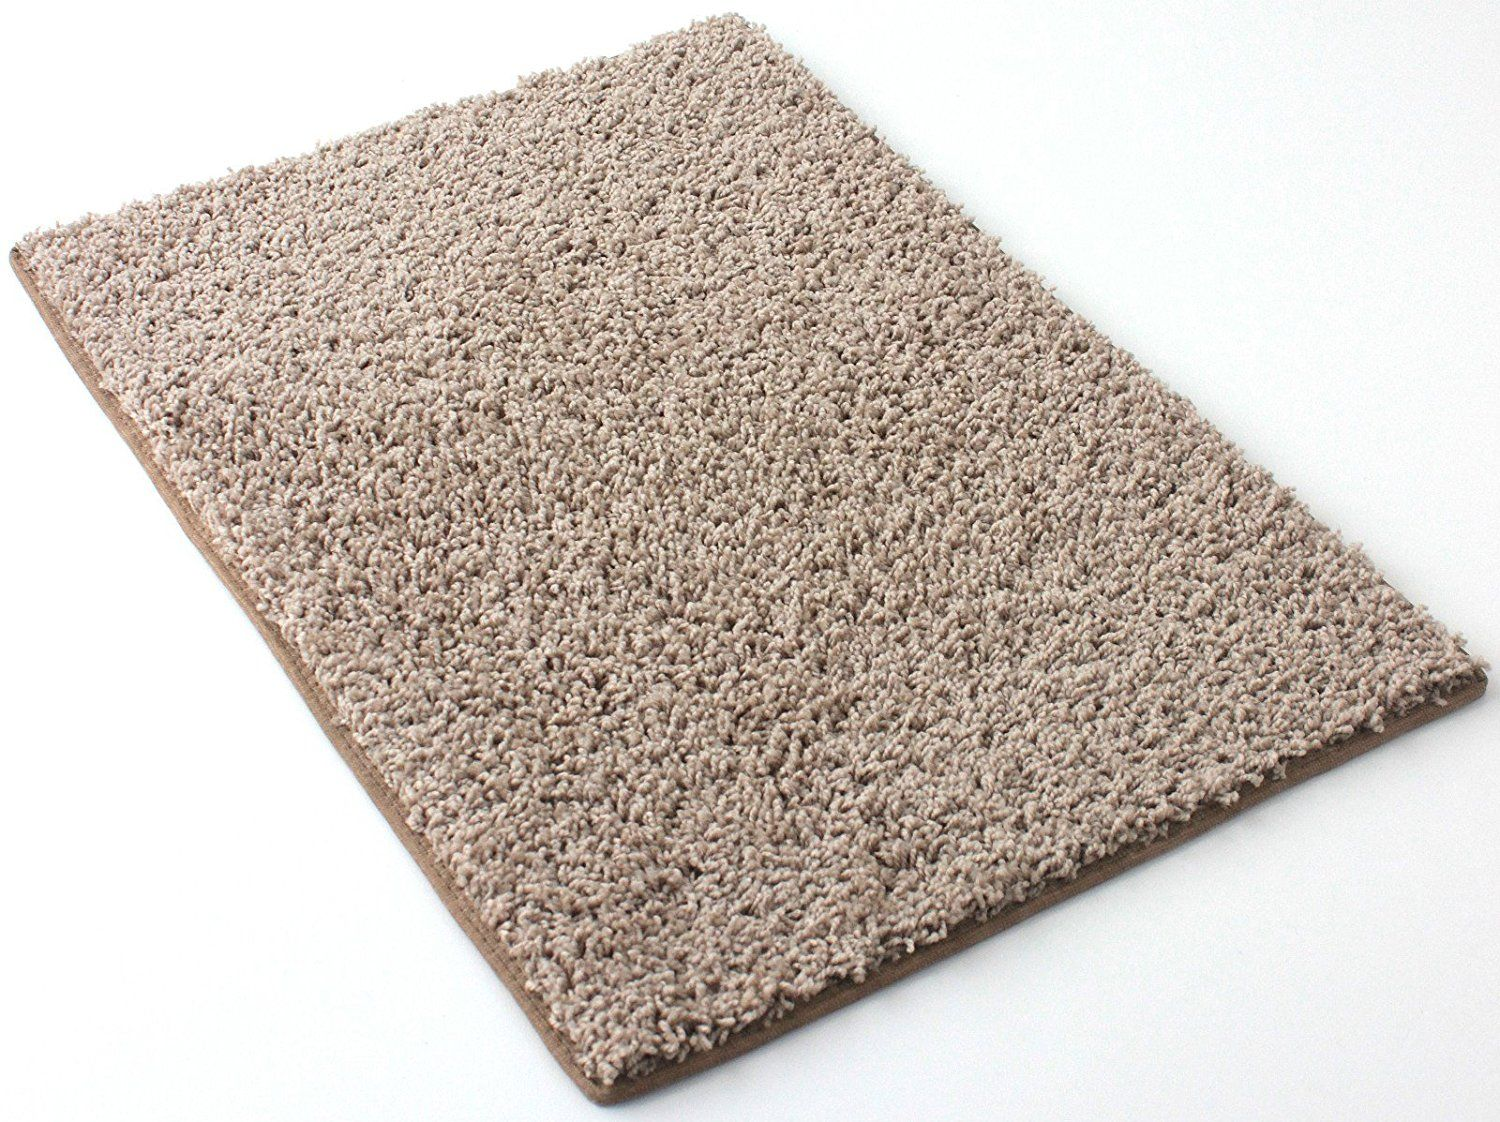 9 X12 Beige Area Rug Frieze Plush Textured Carpet For Residential Or Commercial Use Many Sizes And Shapes T With Images Rugs On Carpet Carpets Area Rugs Textured Carpet